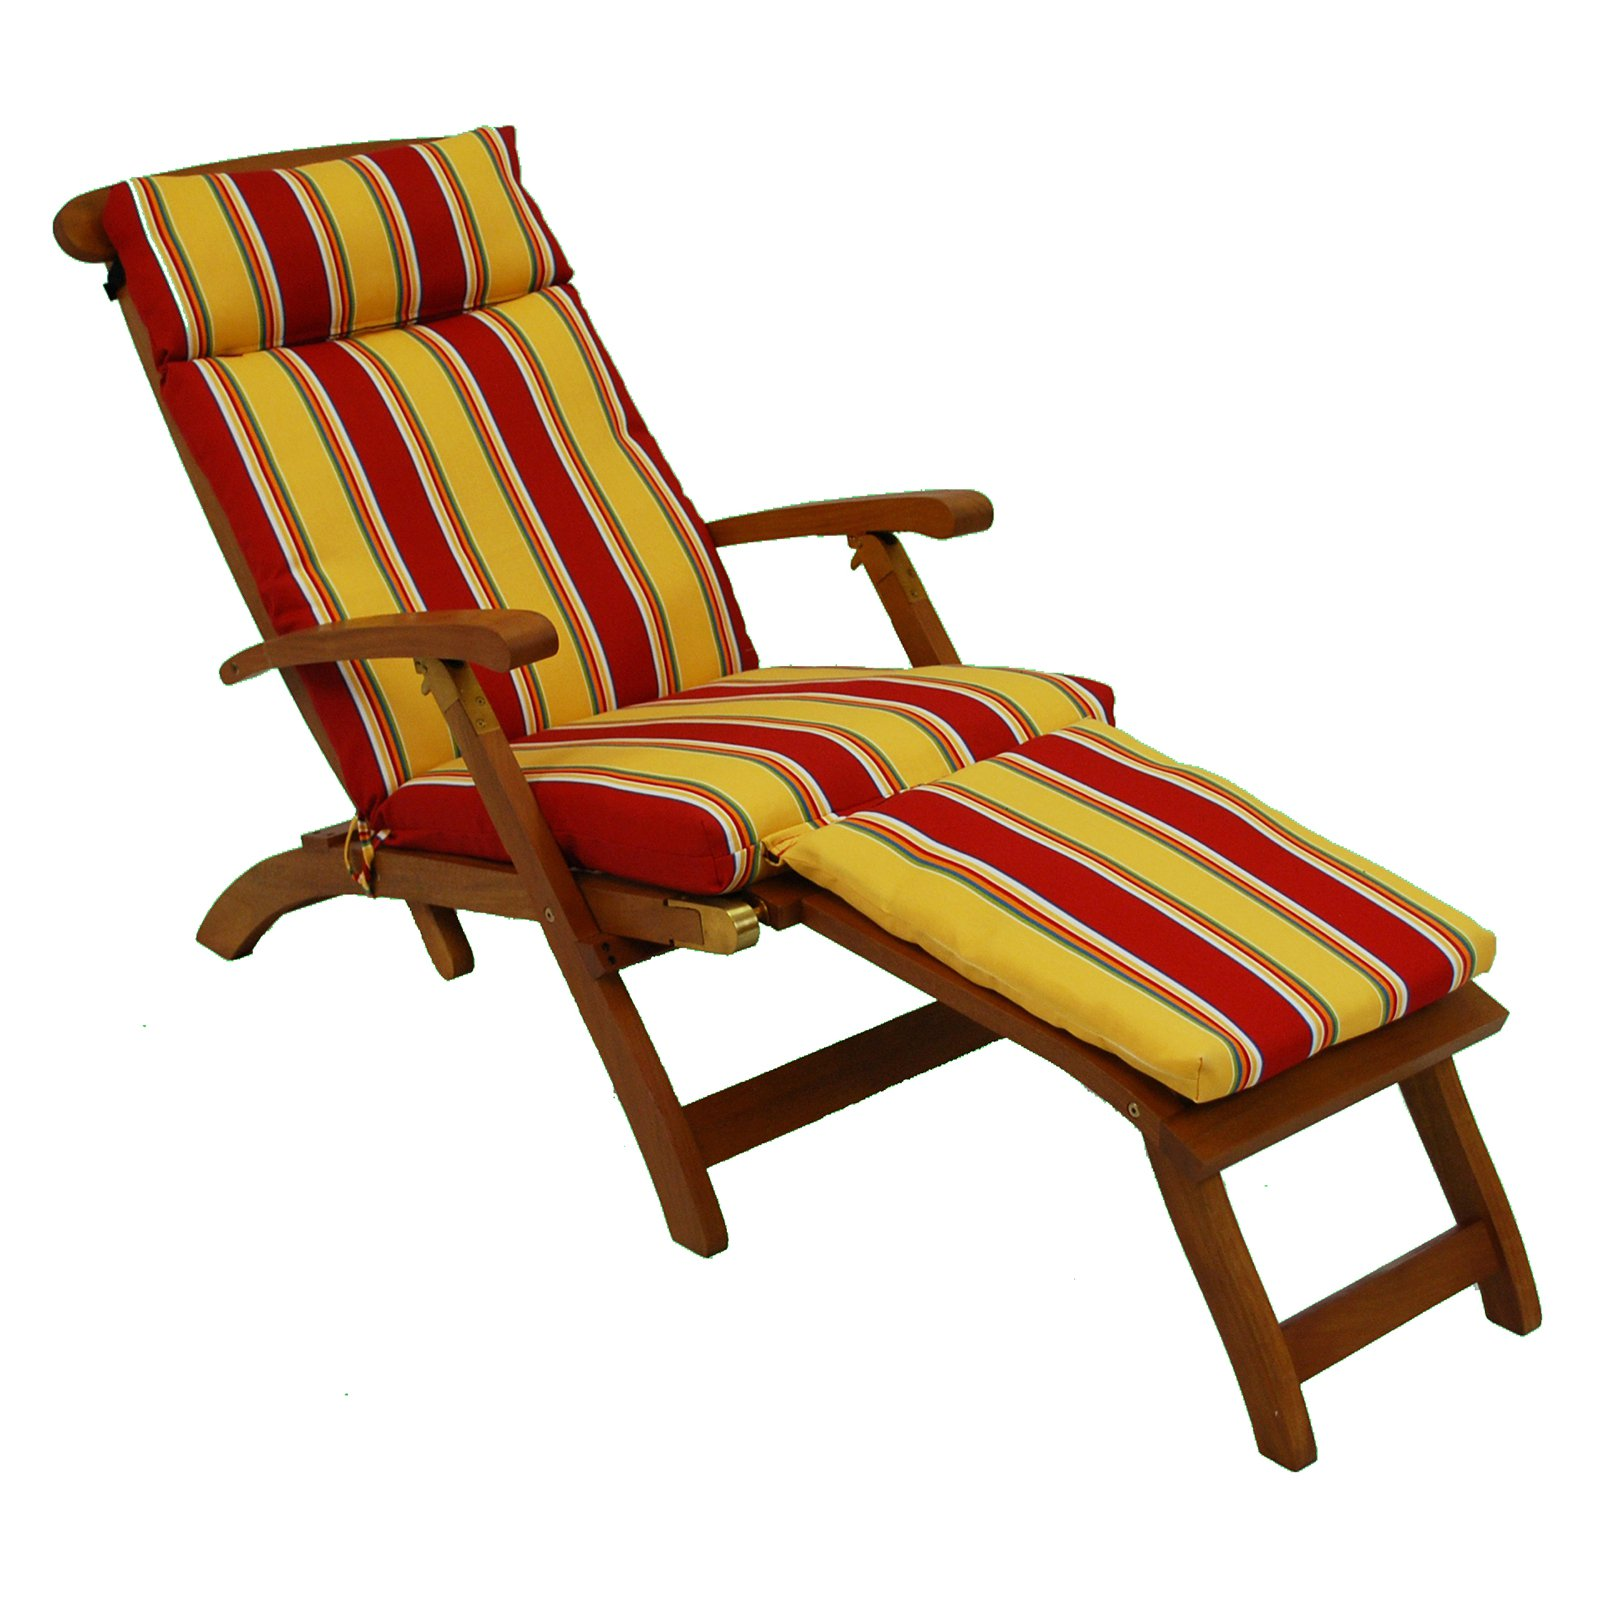 Blazing Needles 72 in. Outdoor UV Resistant Steamer Deck Lounger Cushion